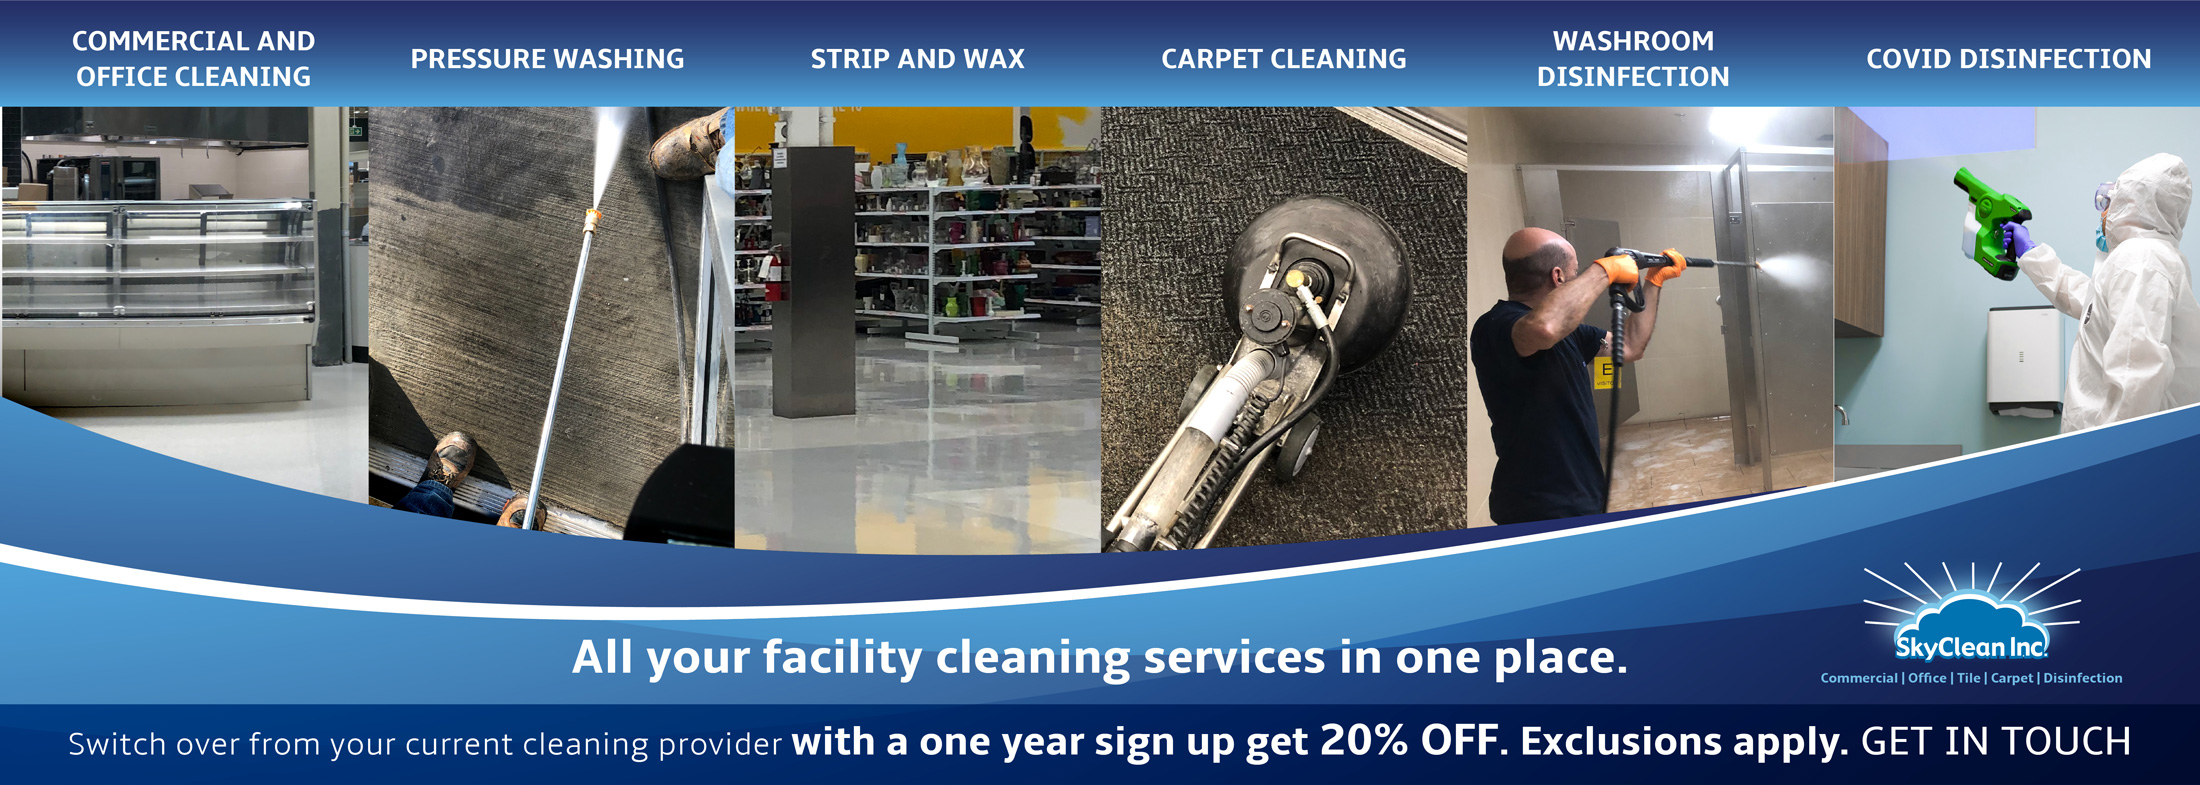 All your Facility Cleaning Services at One Place - Commercial Cleaning Services London Ontario by SkyClean Inc.